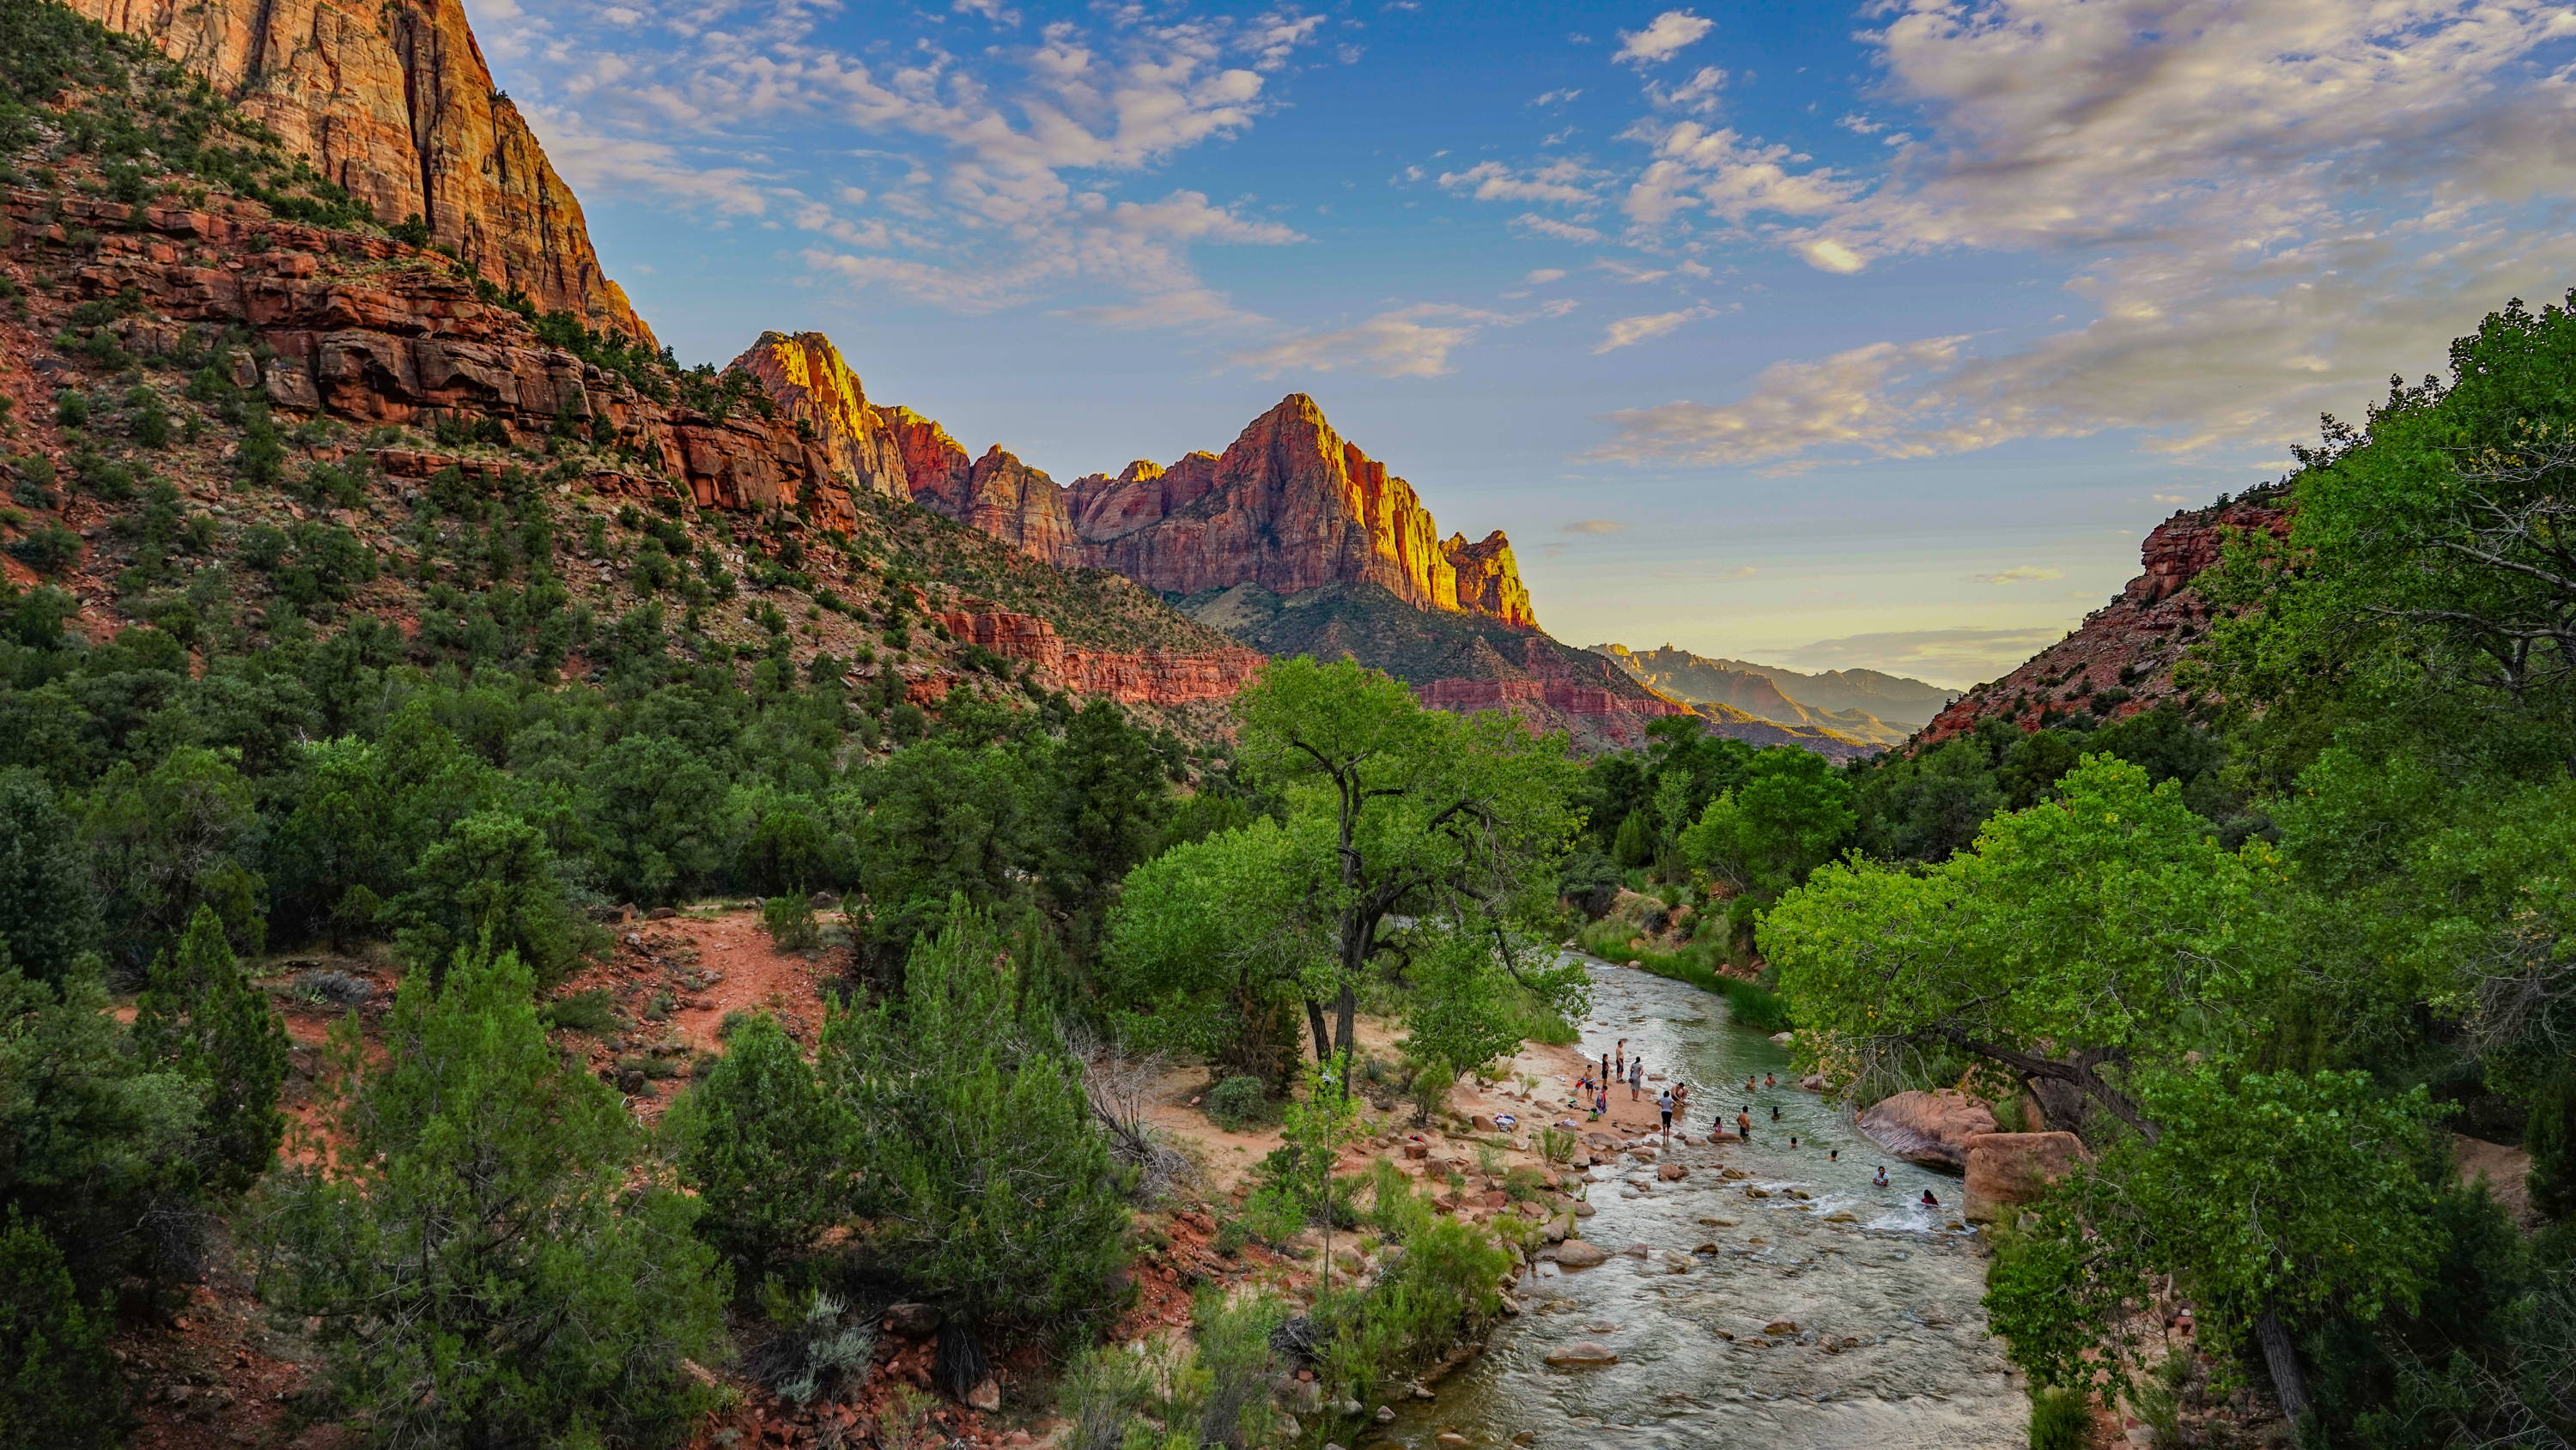 National Parks near Las Vegas, Nevada: People swimming in Virgin River with lush green trees on either side and red standstone formations in distance in Zion National Park.